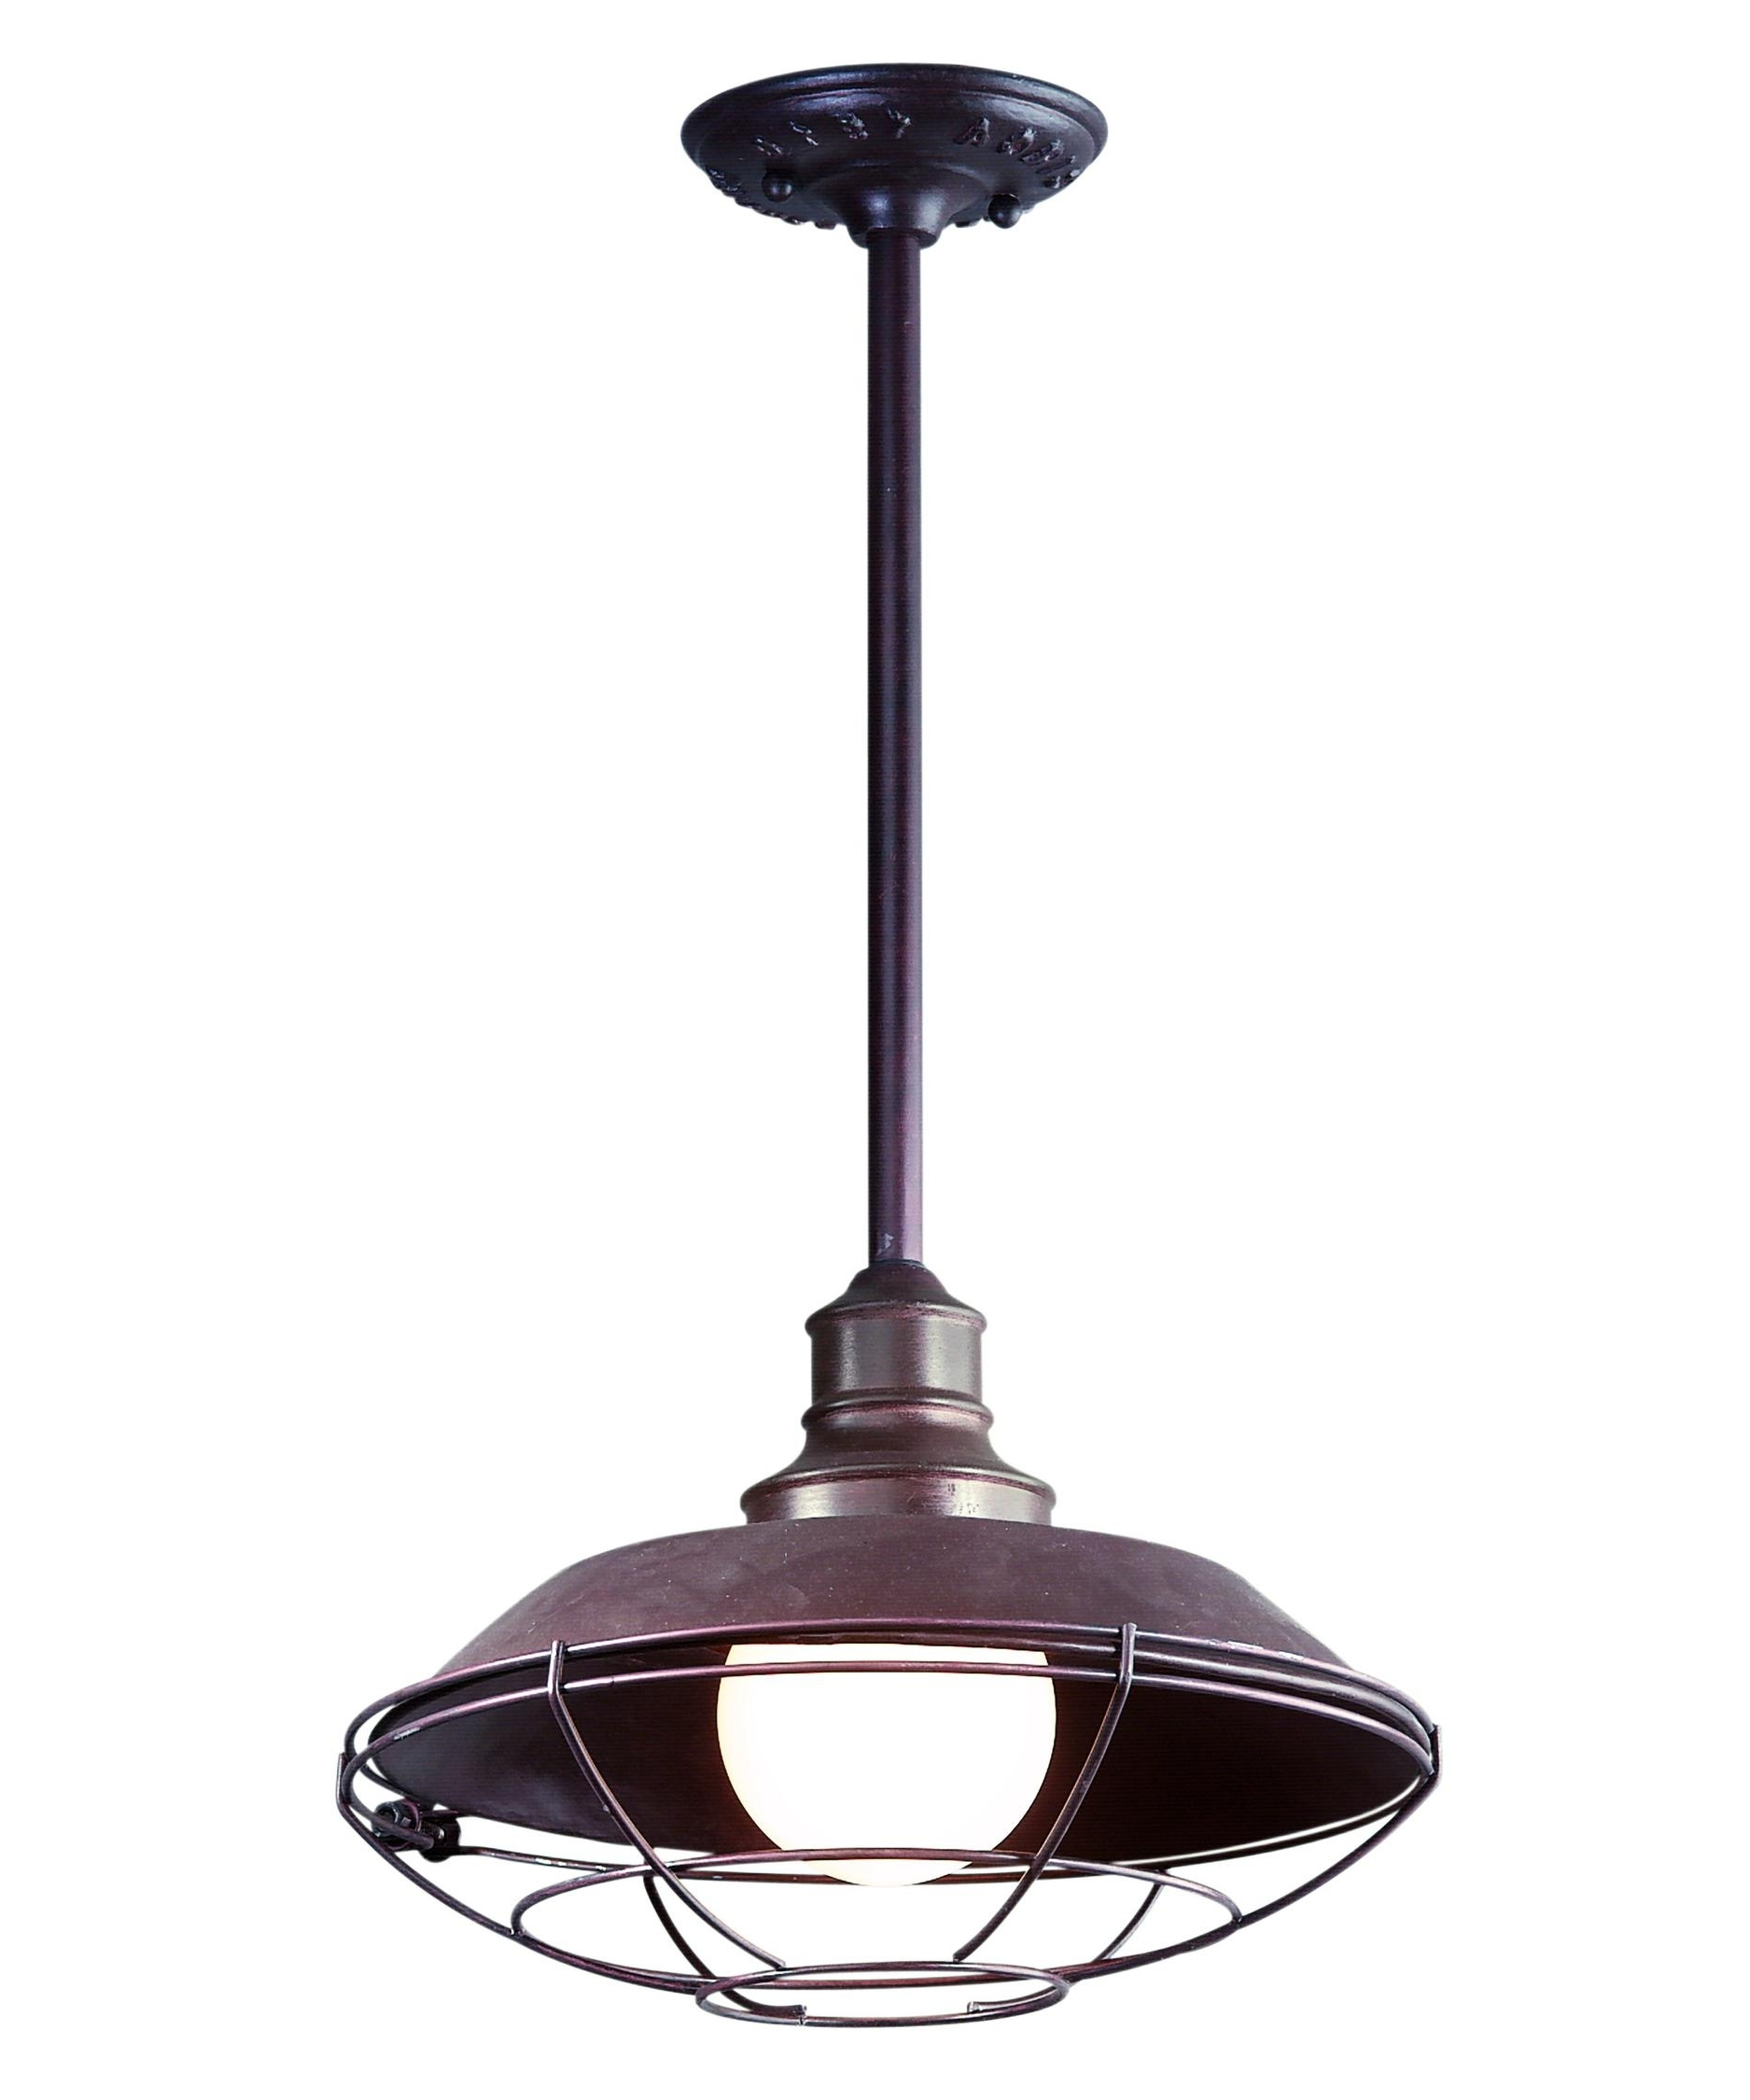 Houzz Pendant Lighting (View 7 of 20)